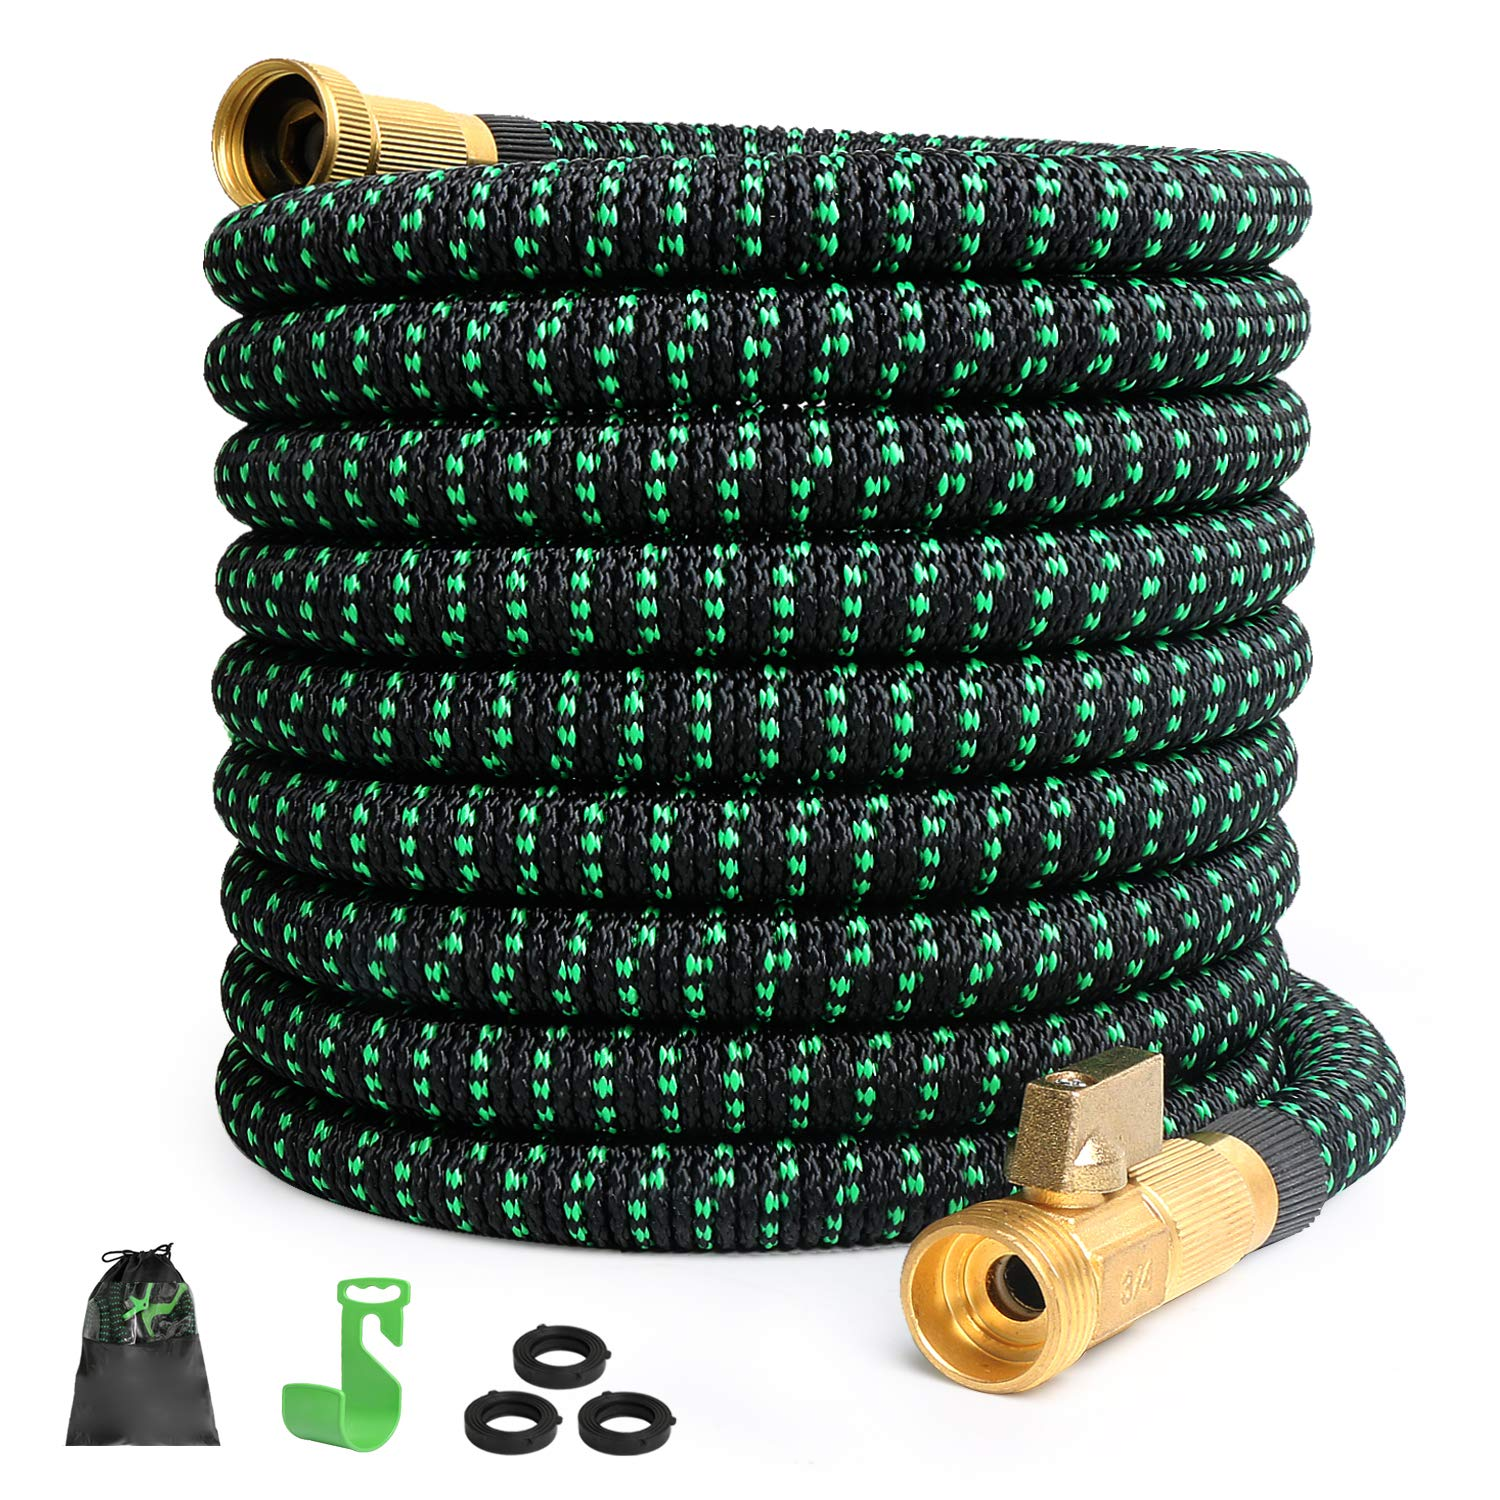 100FT Expandable Garden Hose Expanding Water Hose with 3/4'' 100% Brass Connector, 100' Flexible Gardening Hoses with Extra Strength Fabric and Multi-Layer Latex Core, Lightweight Yard Outdoor Hose by monyar